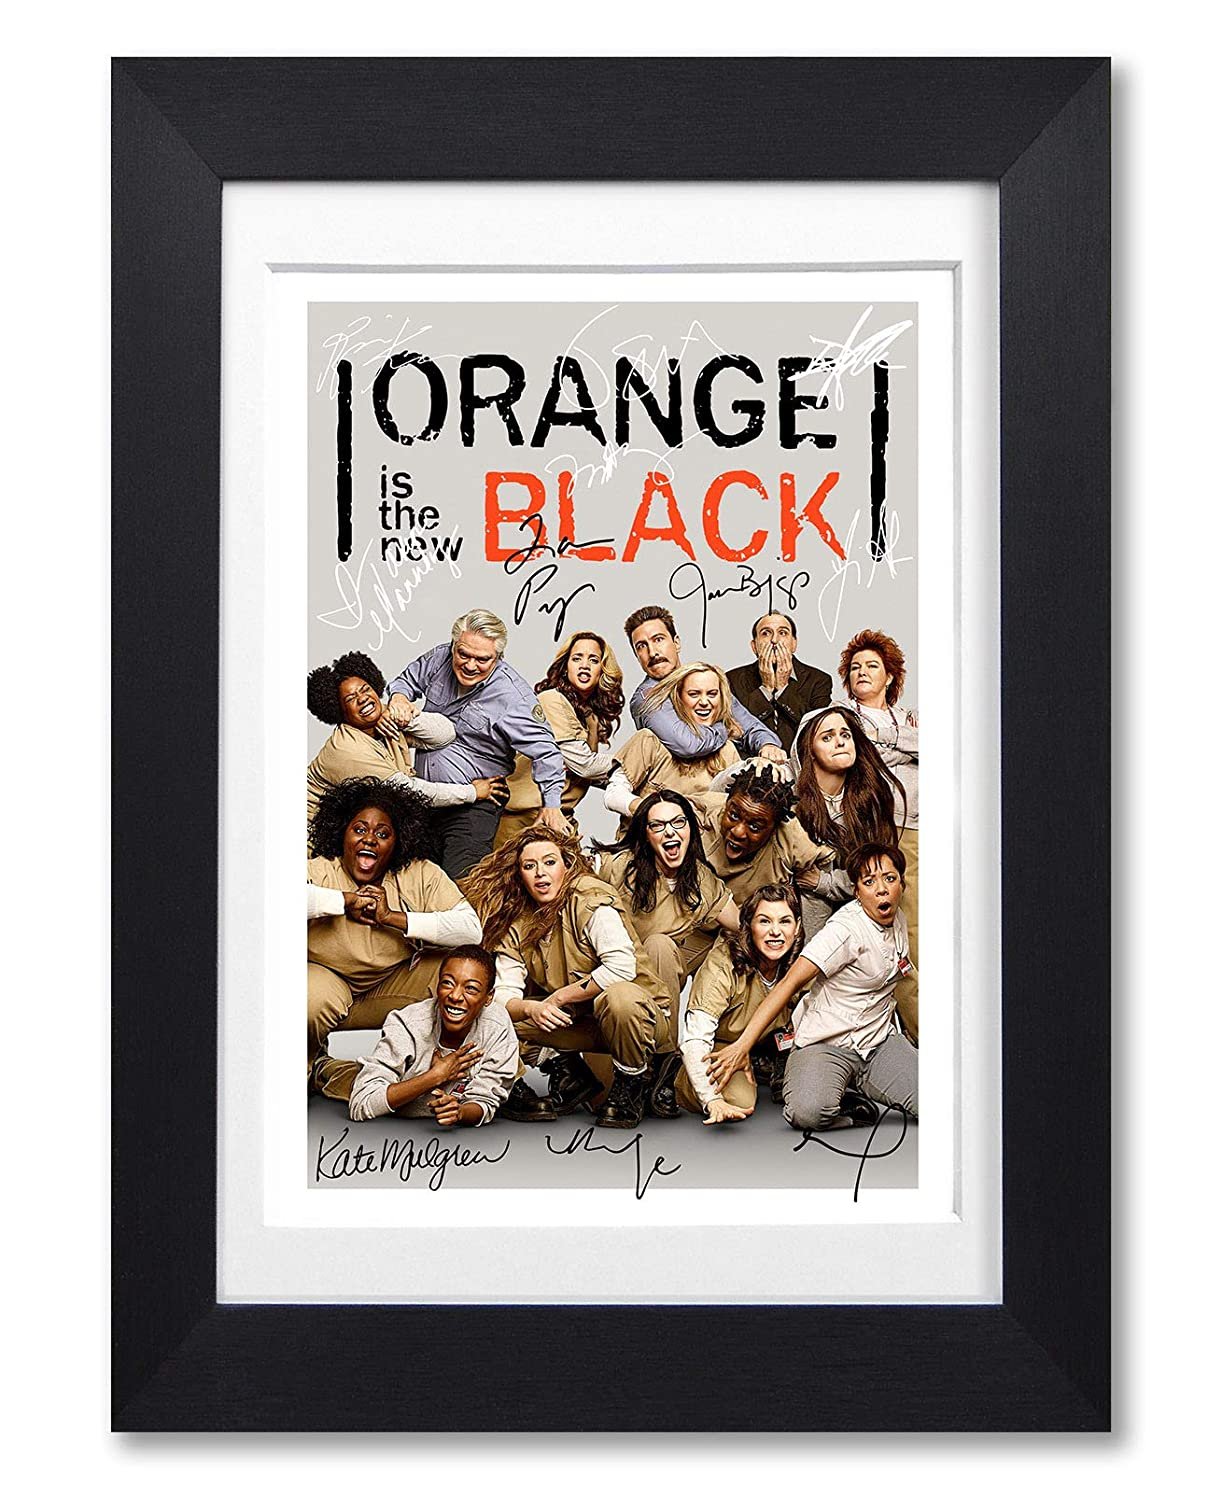 Laura Prepon Signed Autographed A4 Photo Print Poster